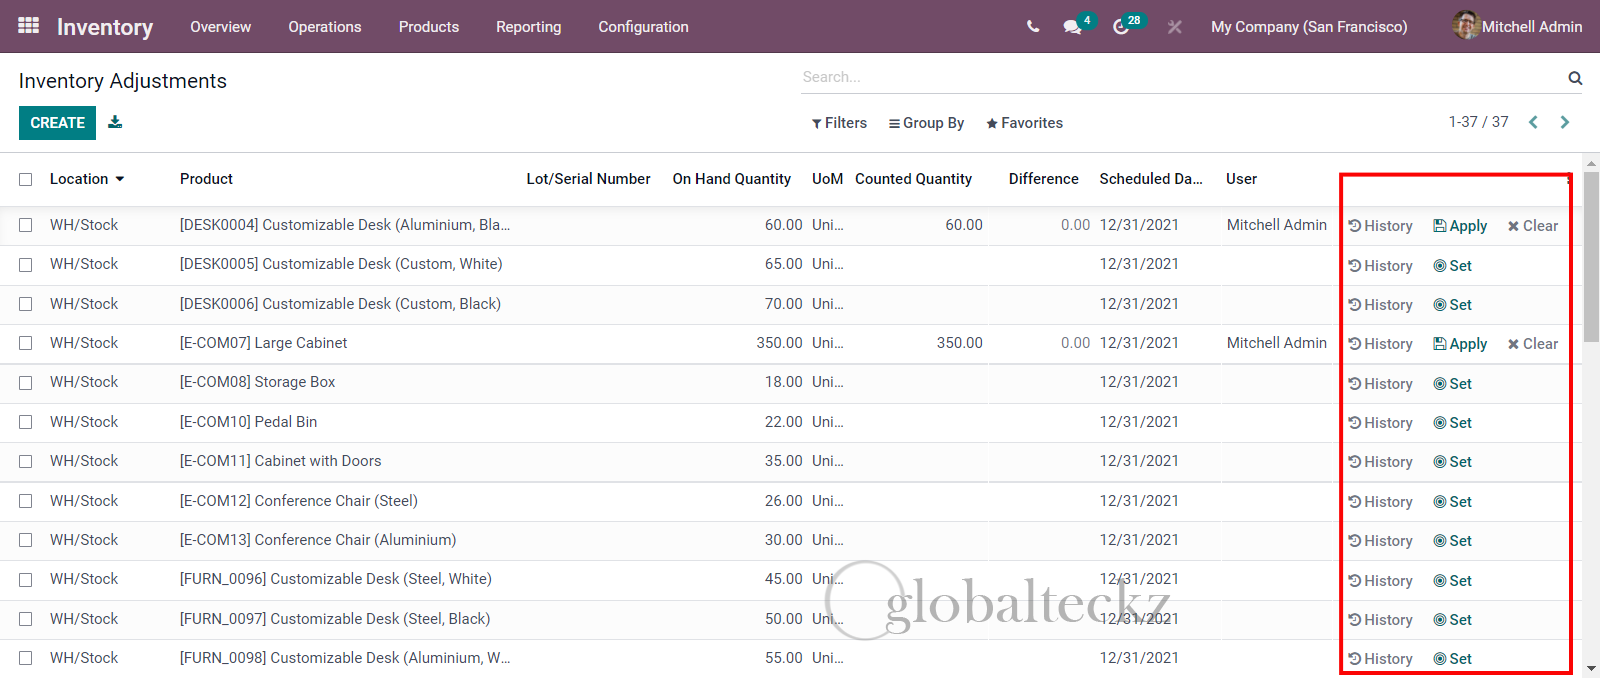 odoo 15New Inventory Adjustment View